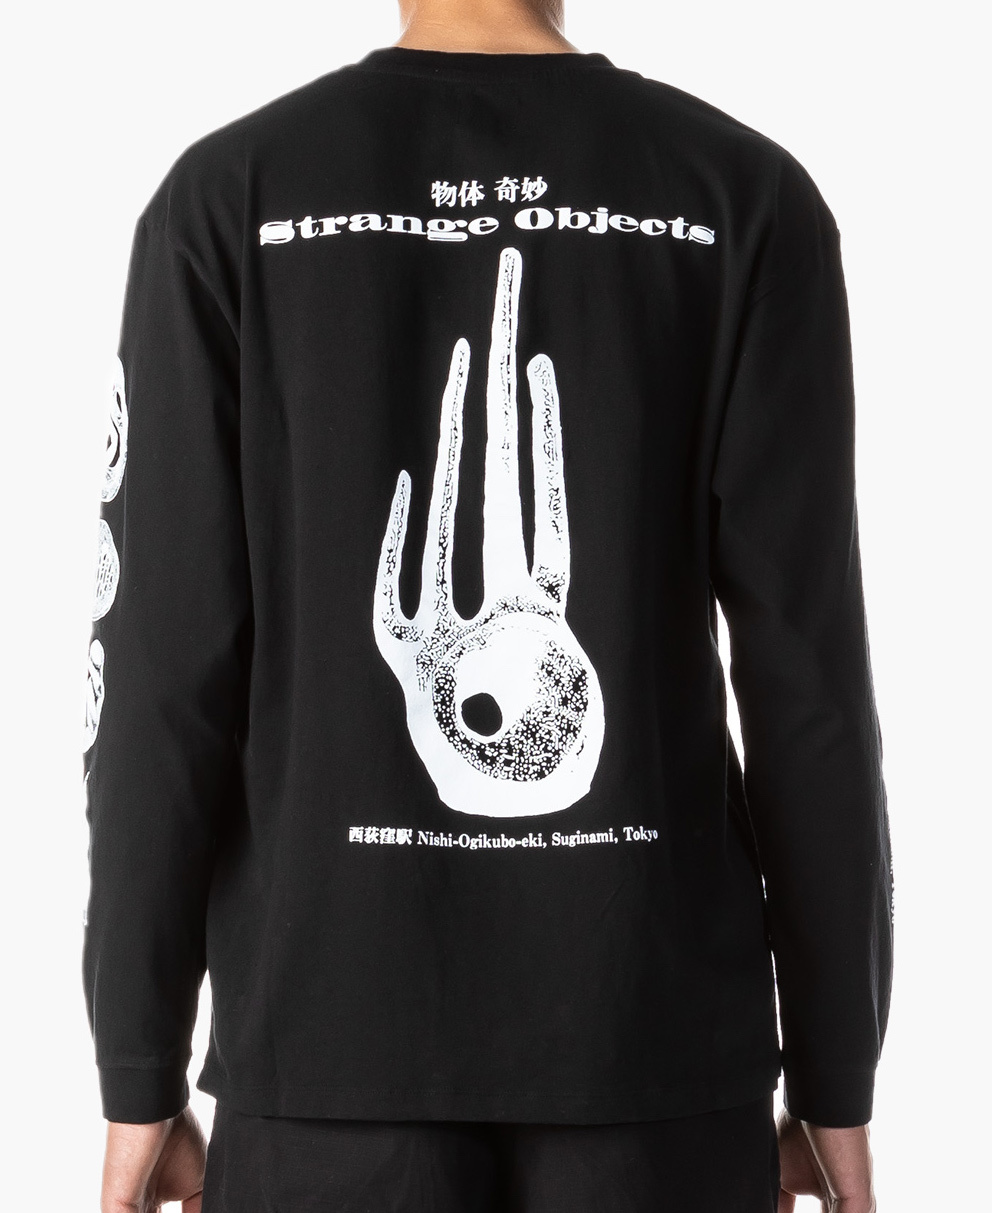 Strange Objects Longsleeve T-Shirt 160g Cotton T-shirt Black-2